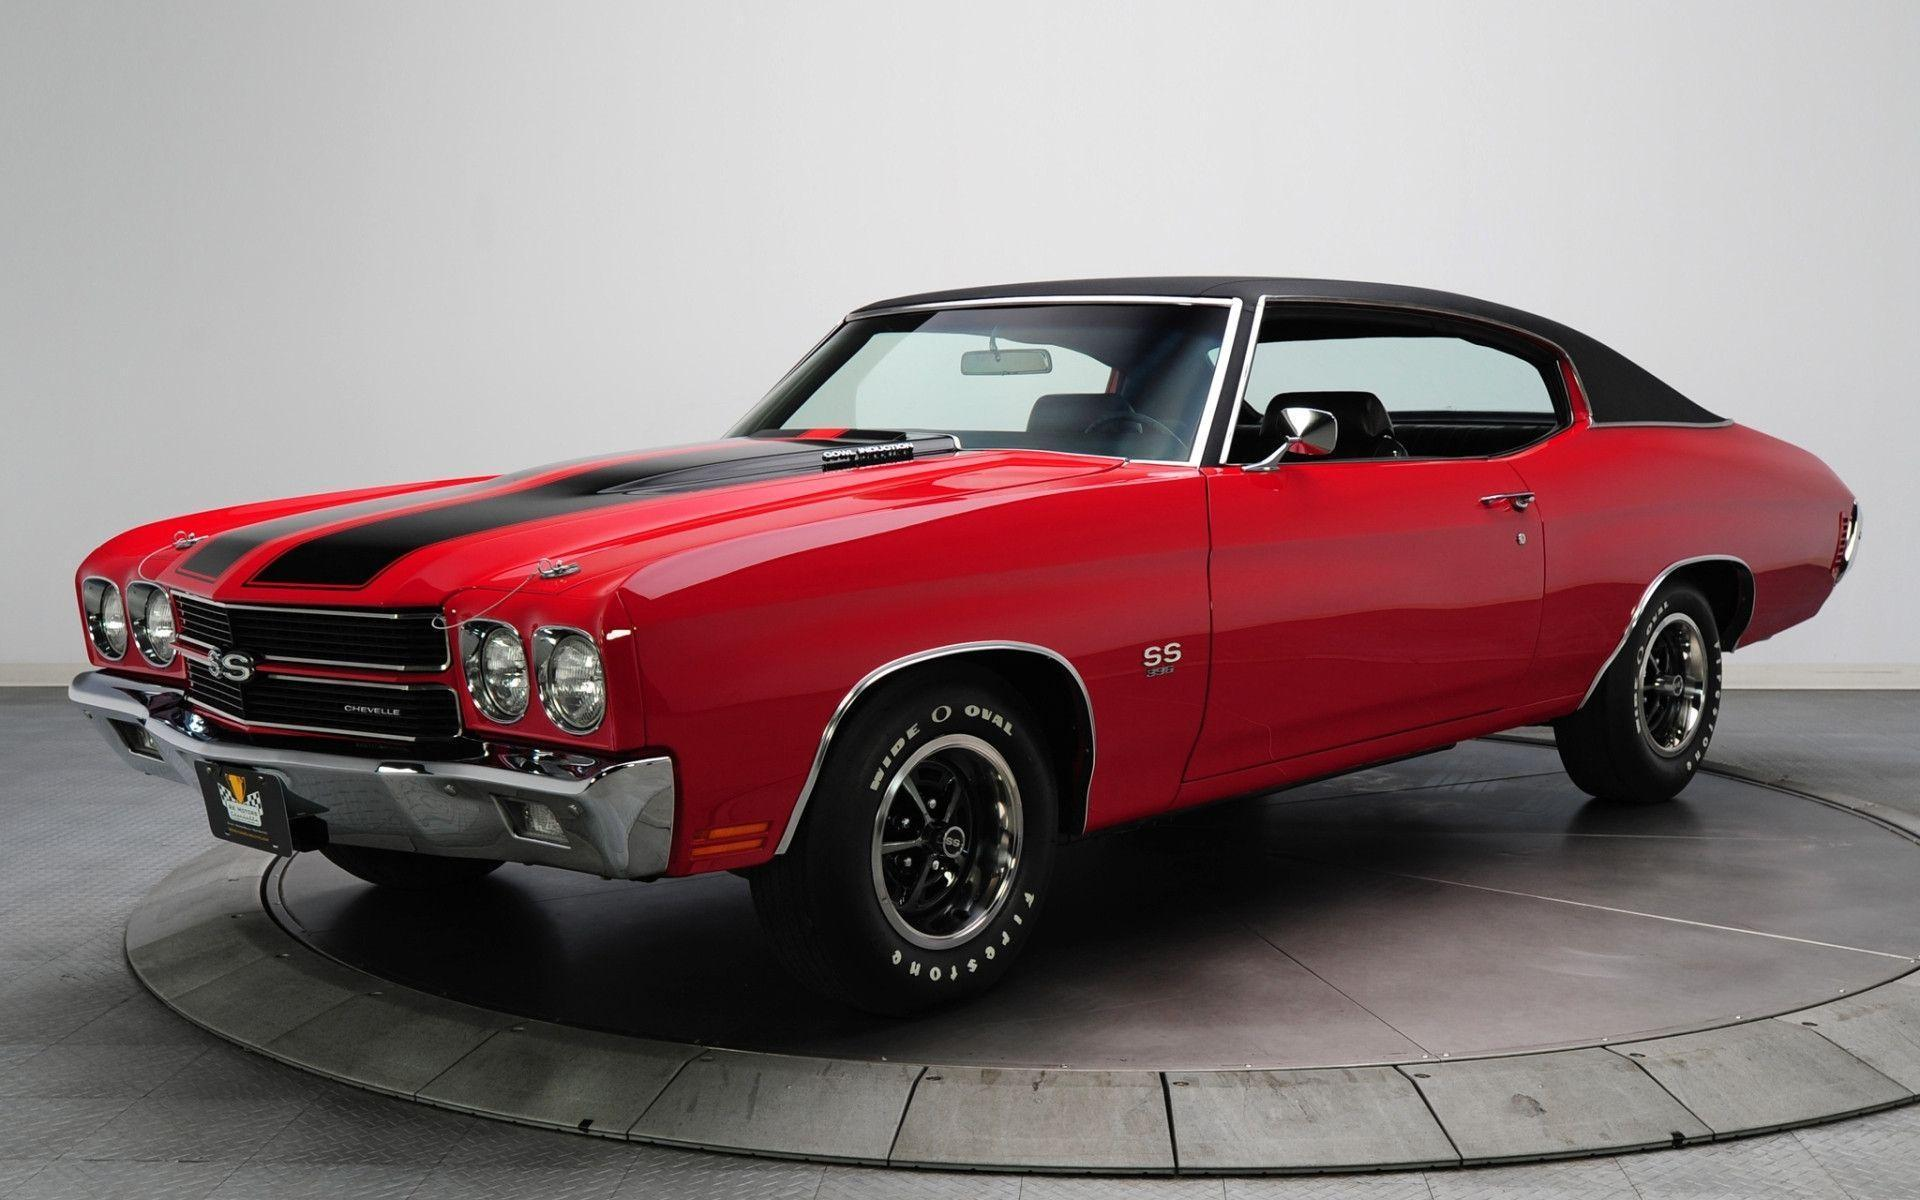 1970 Chevelle SS Wallpapers - Wallpaper Cave